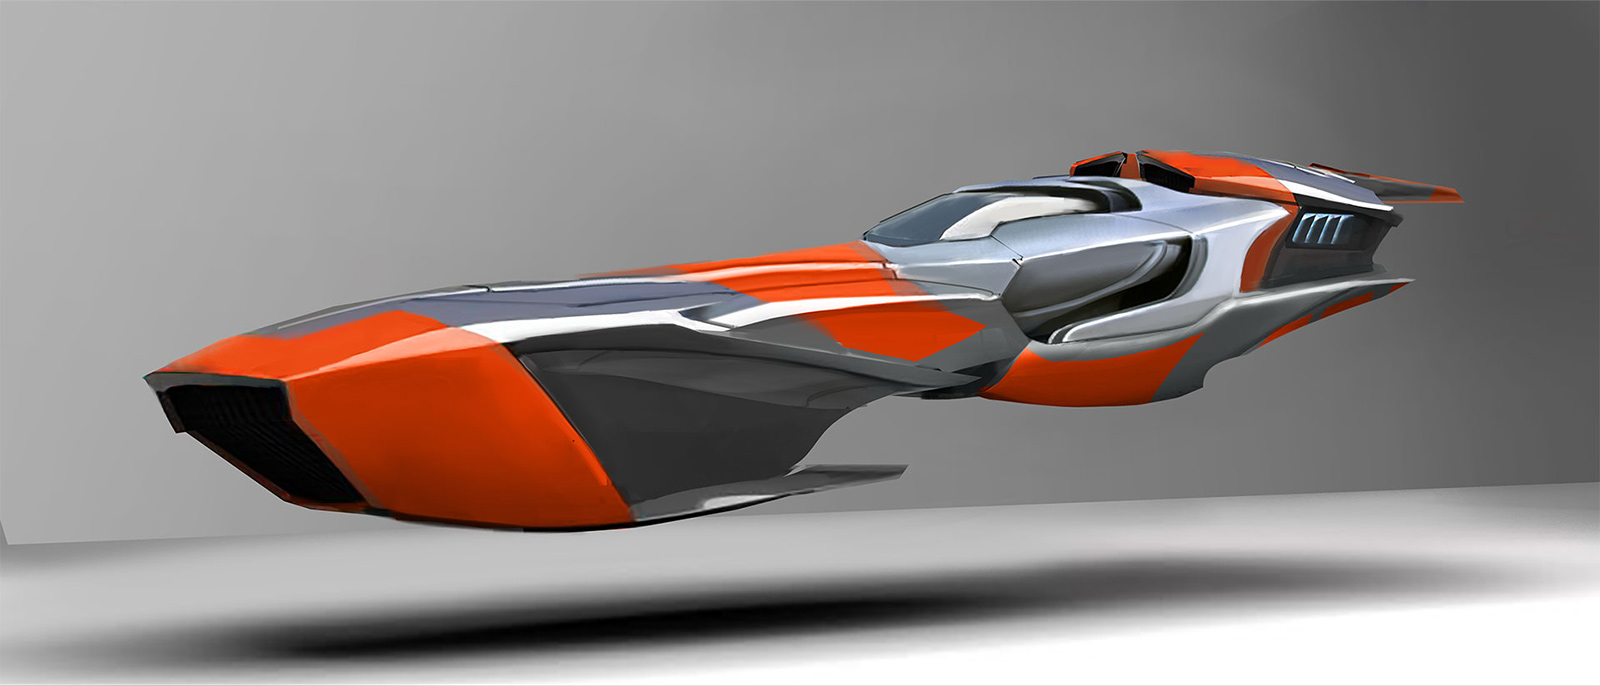 Concept ships spaceship concepts by giorgio grecu for 11547 sunshine terrace